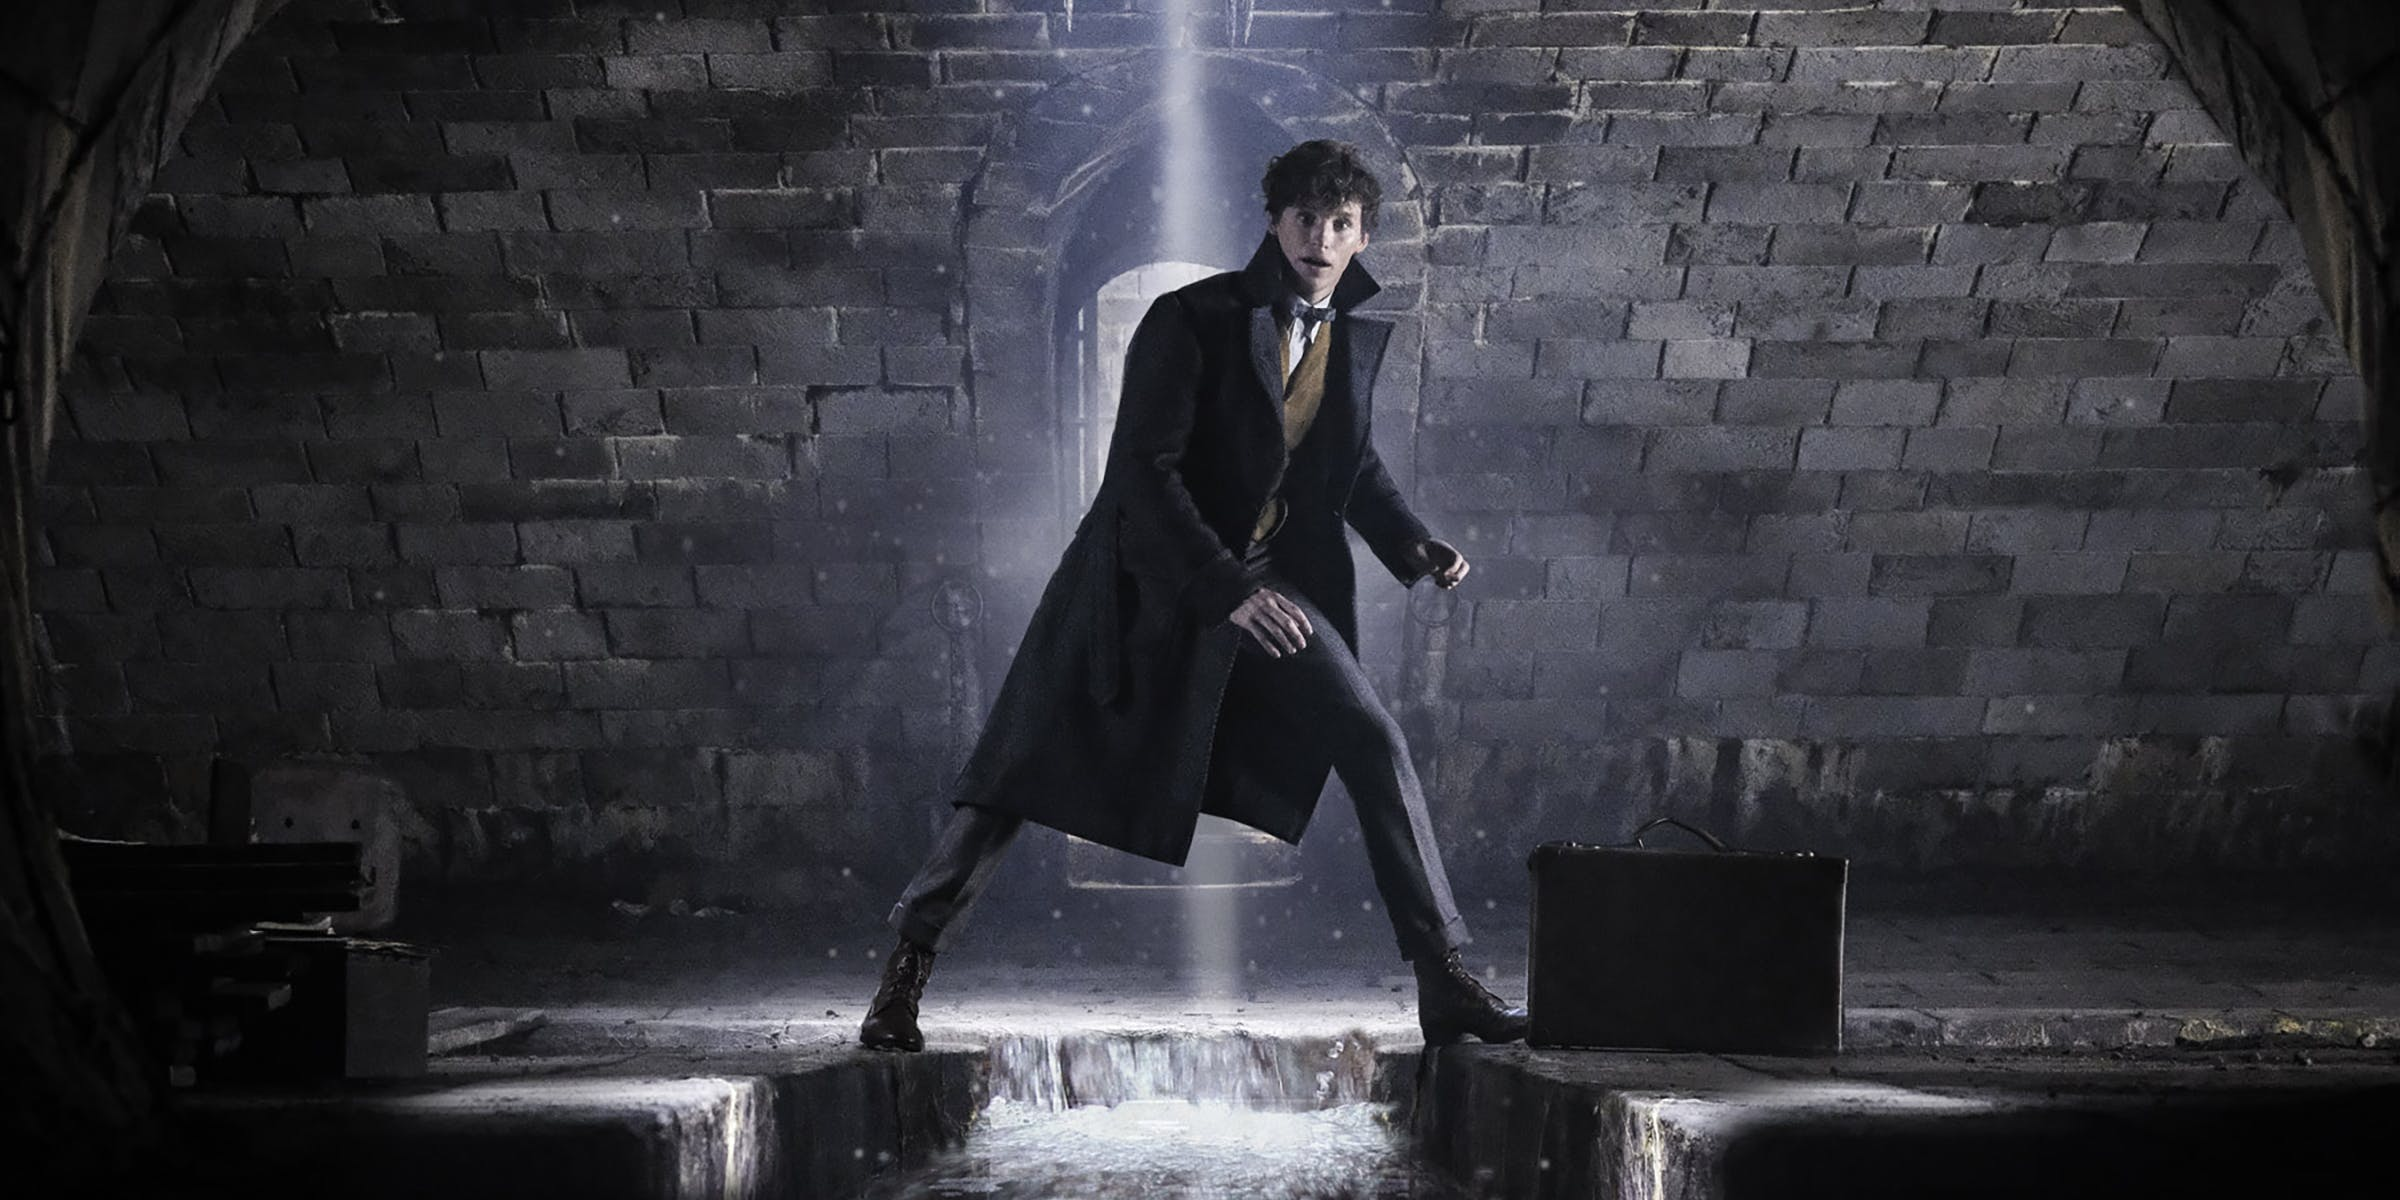 Fantastic Beasts 3 Expected To Feature More Hogwarts, Attempt To Bring Harry Potter Magic Back